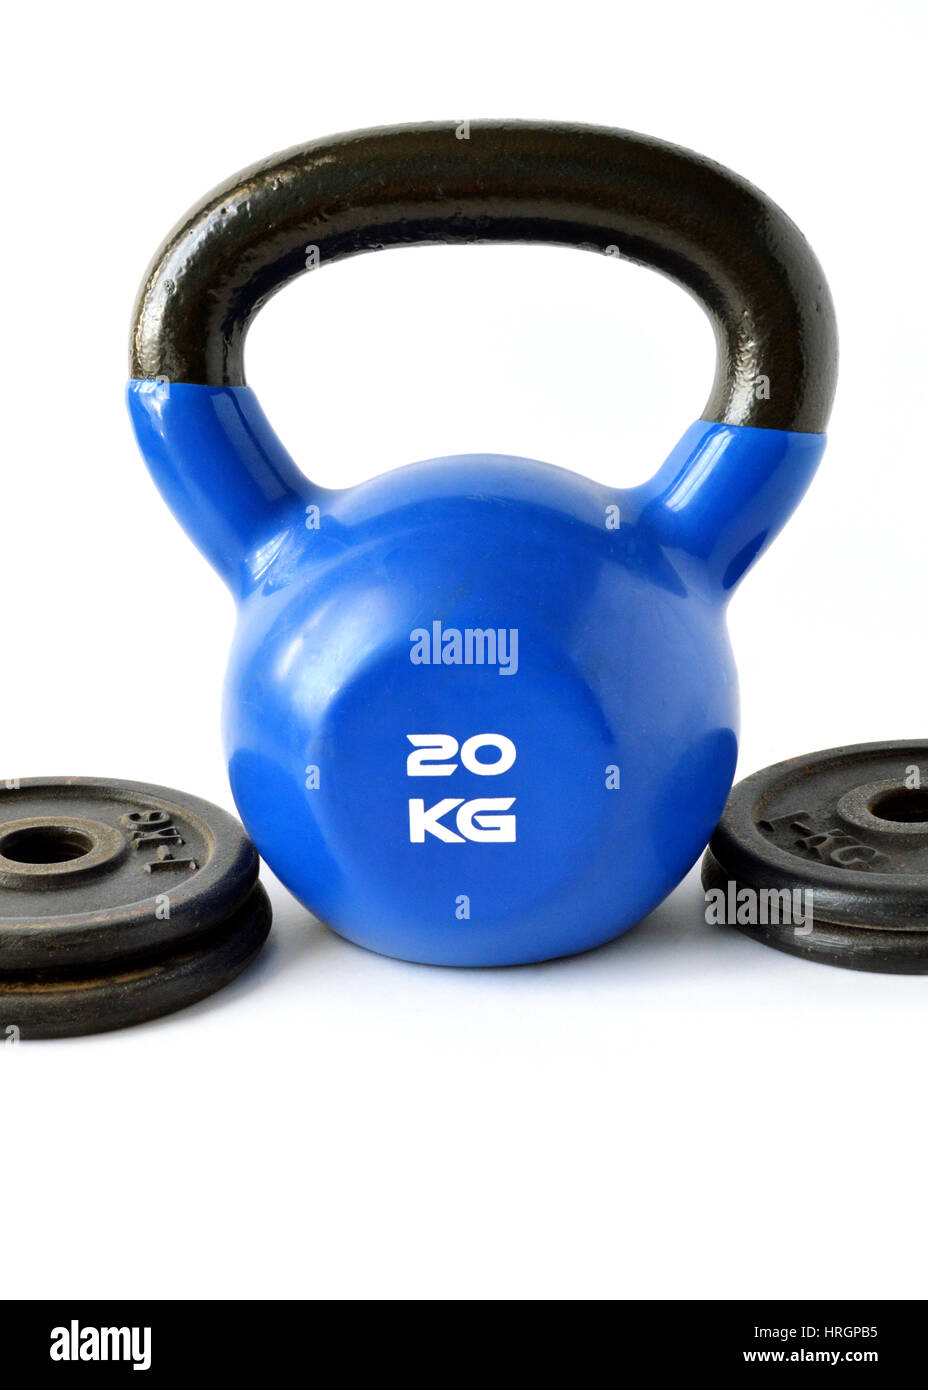 Kettlebell Bodybuilding Tools For Bodybuilding Fitness And Crossfit Weight And